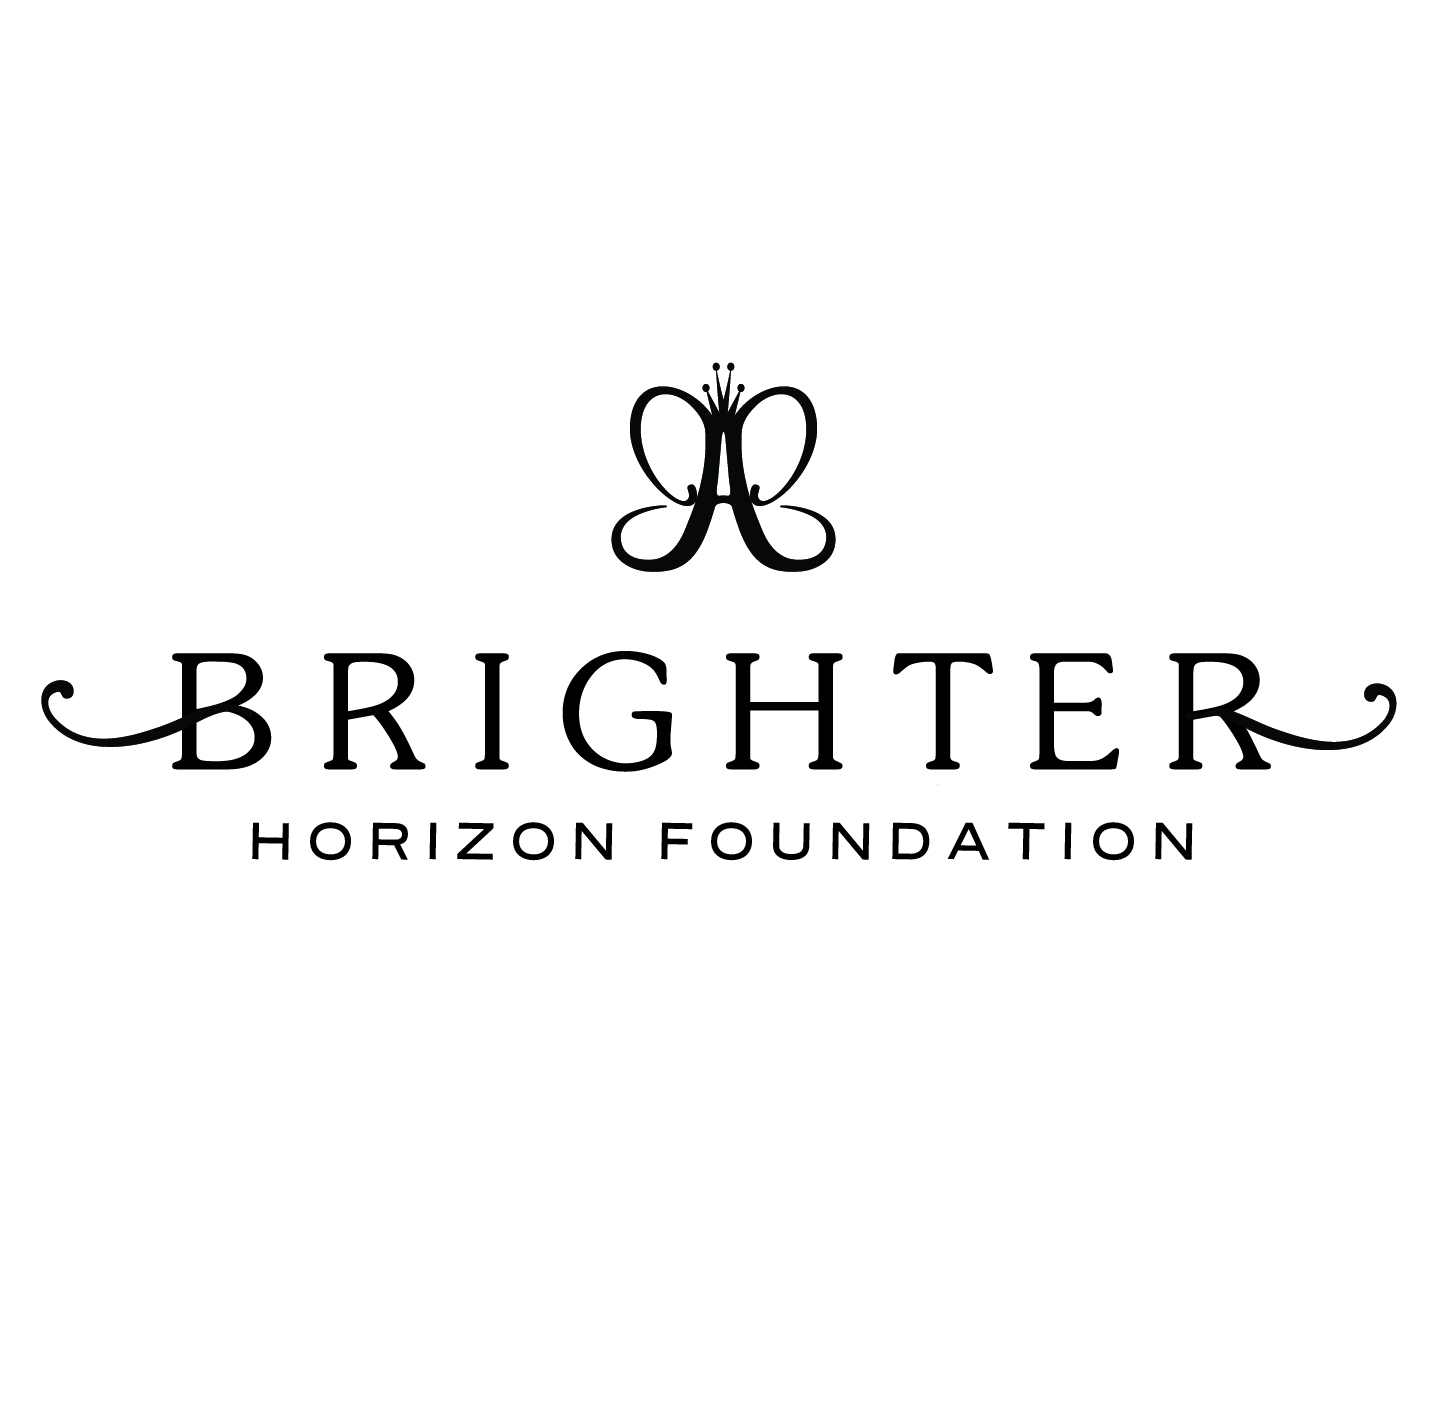 2013- Anastasia Brighter Horizon Foundation